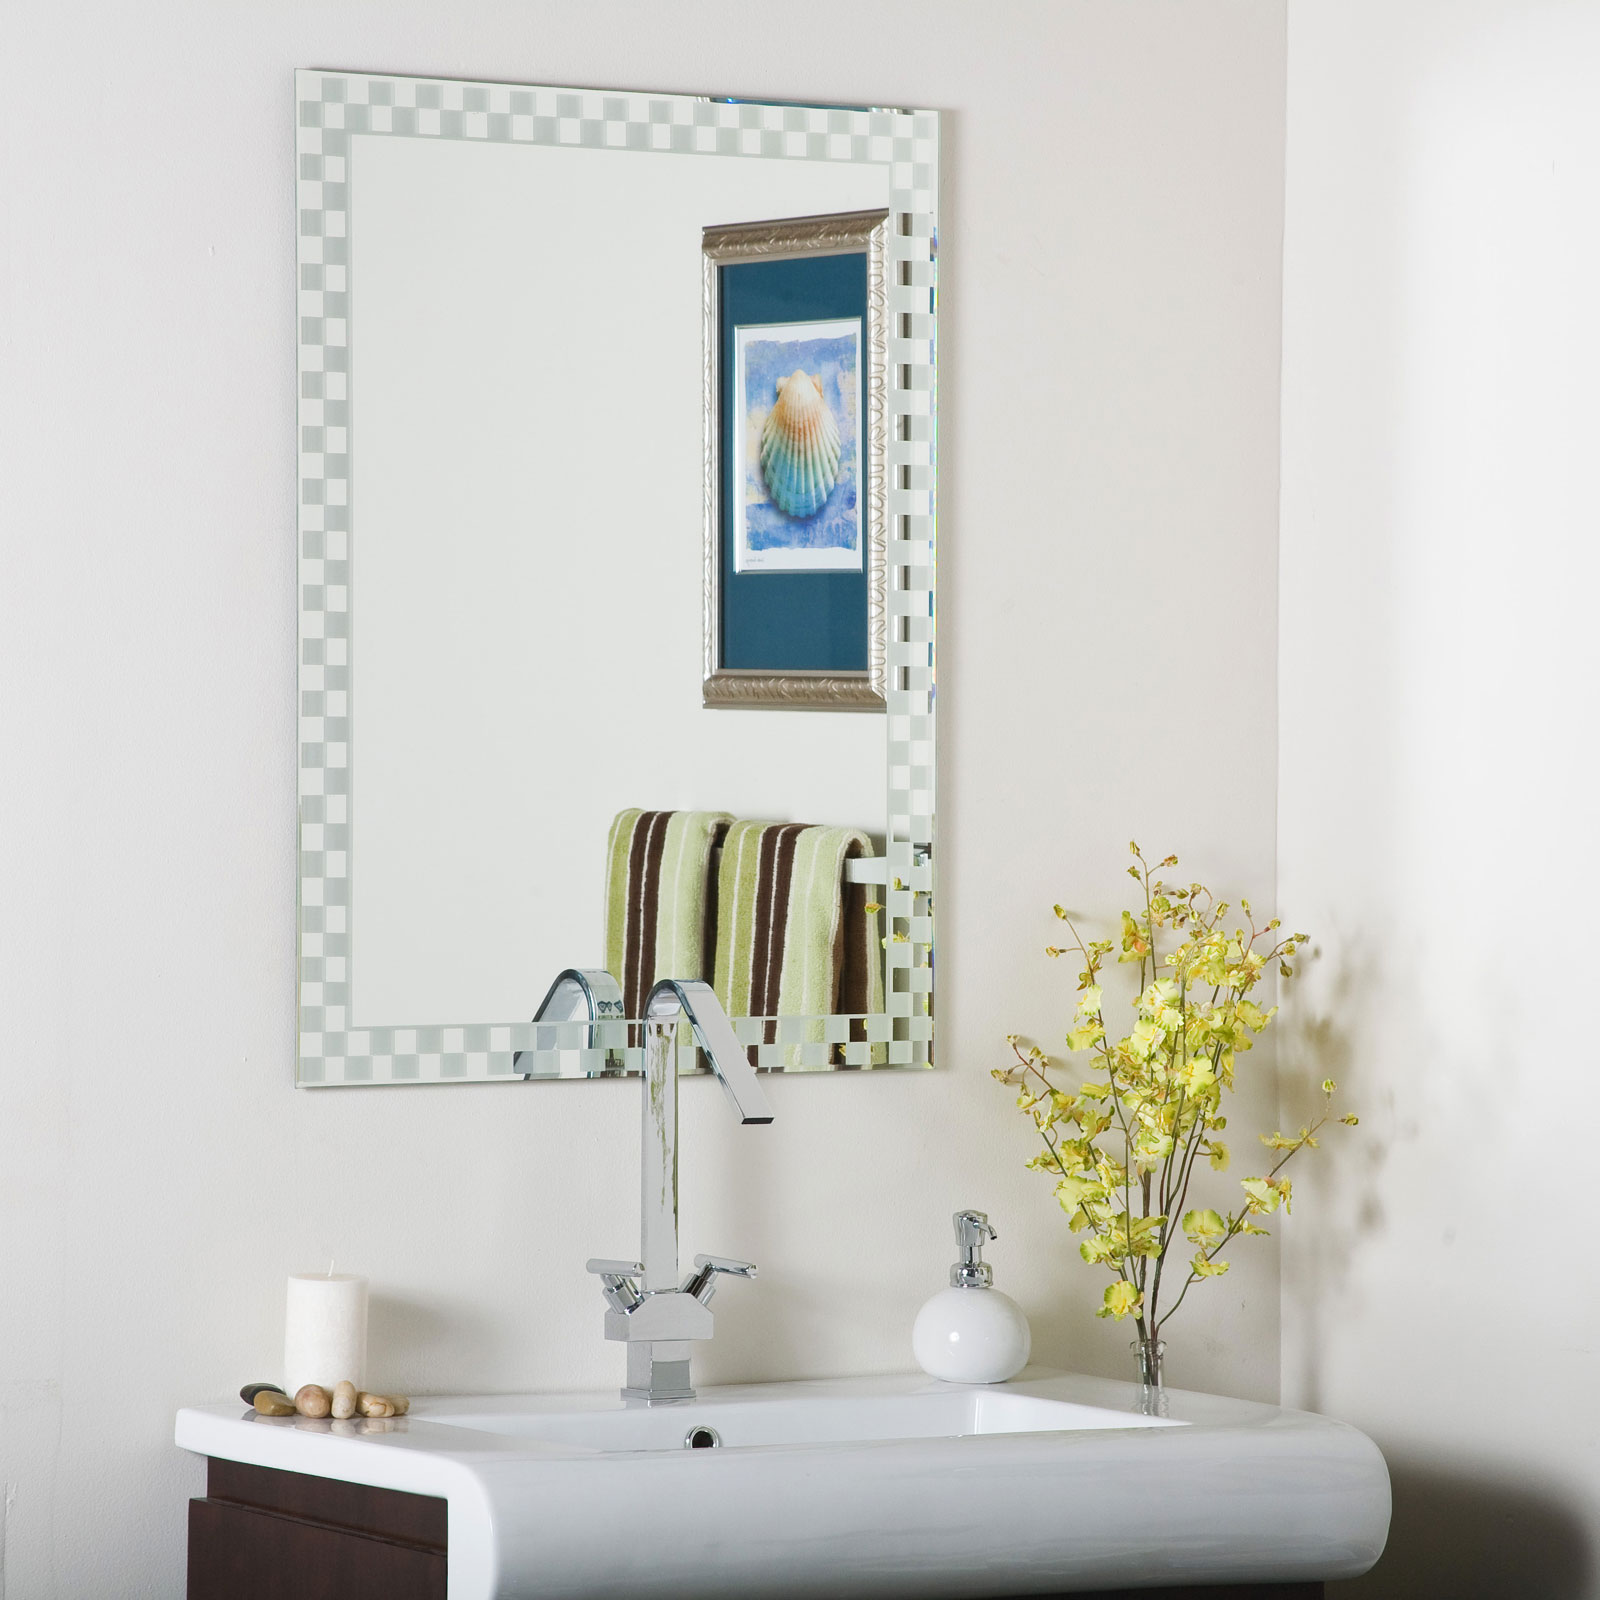 Decorative Mirror Mounting Hardware Checkers Frameless Wall Mirror By Decor Wonderland In